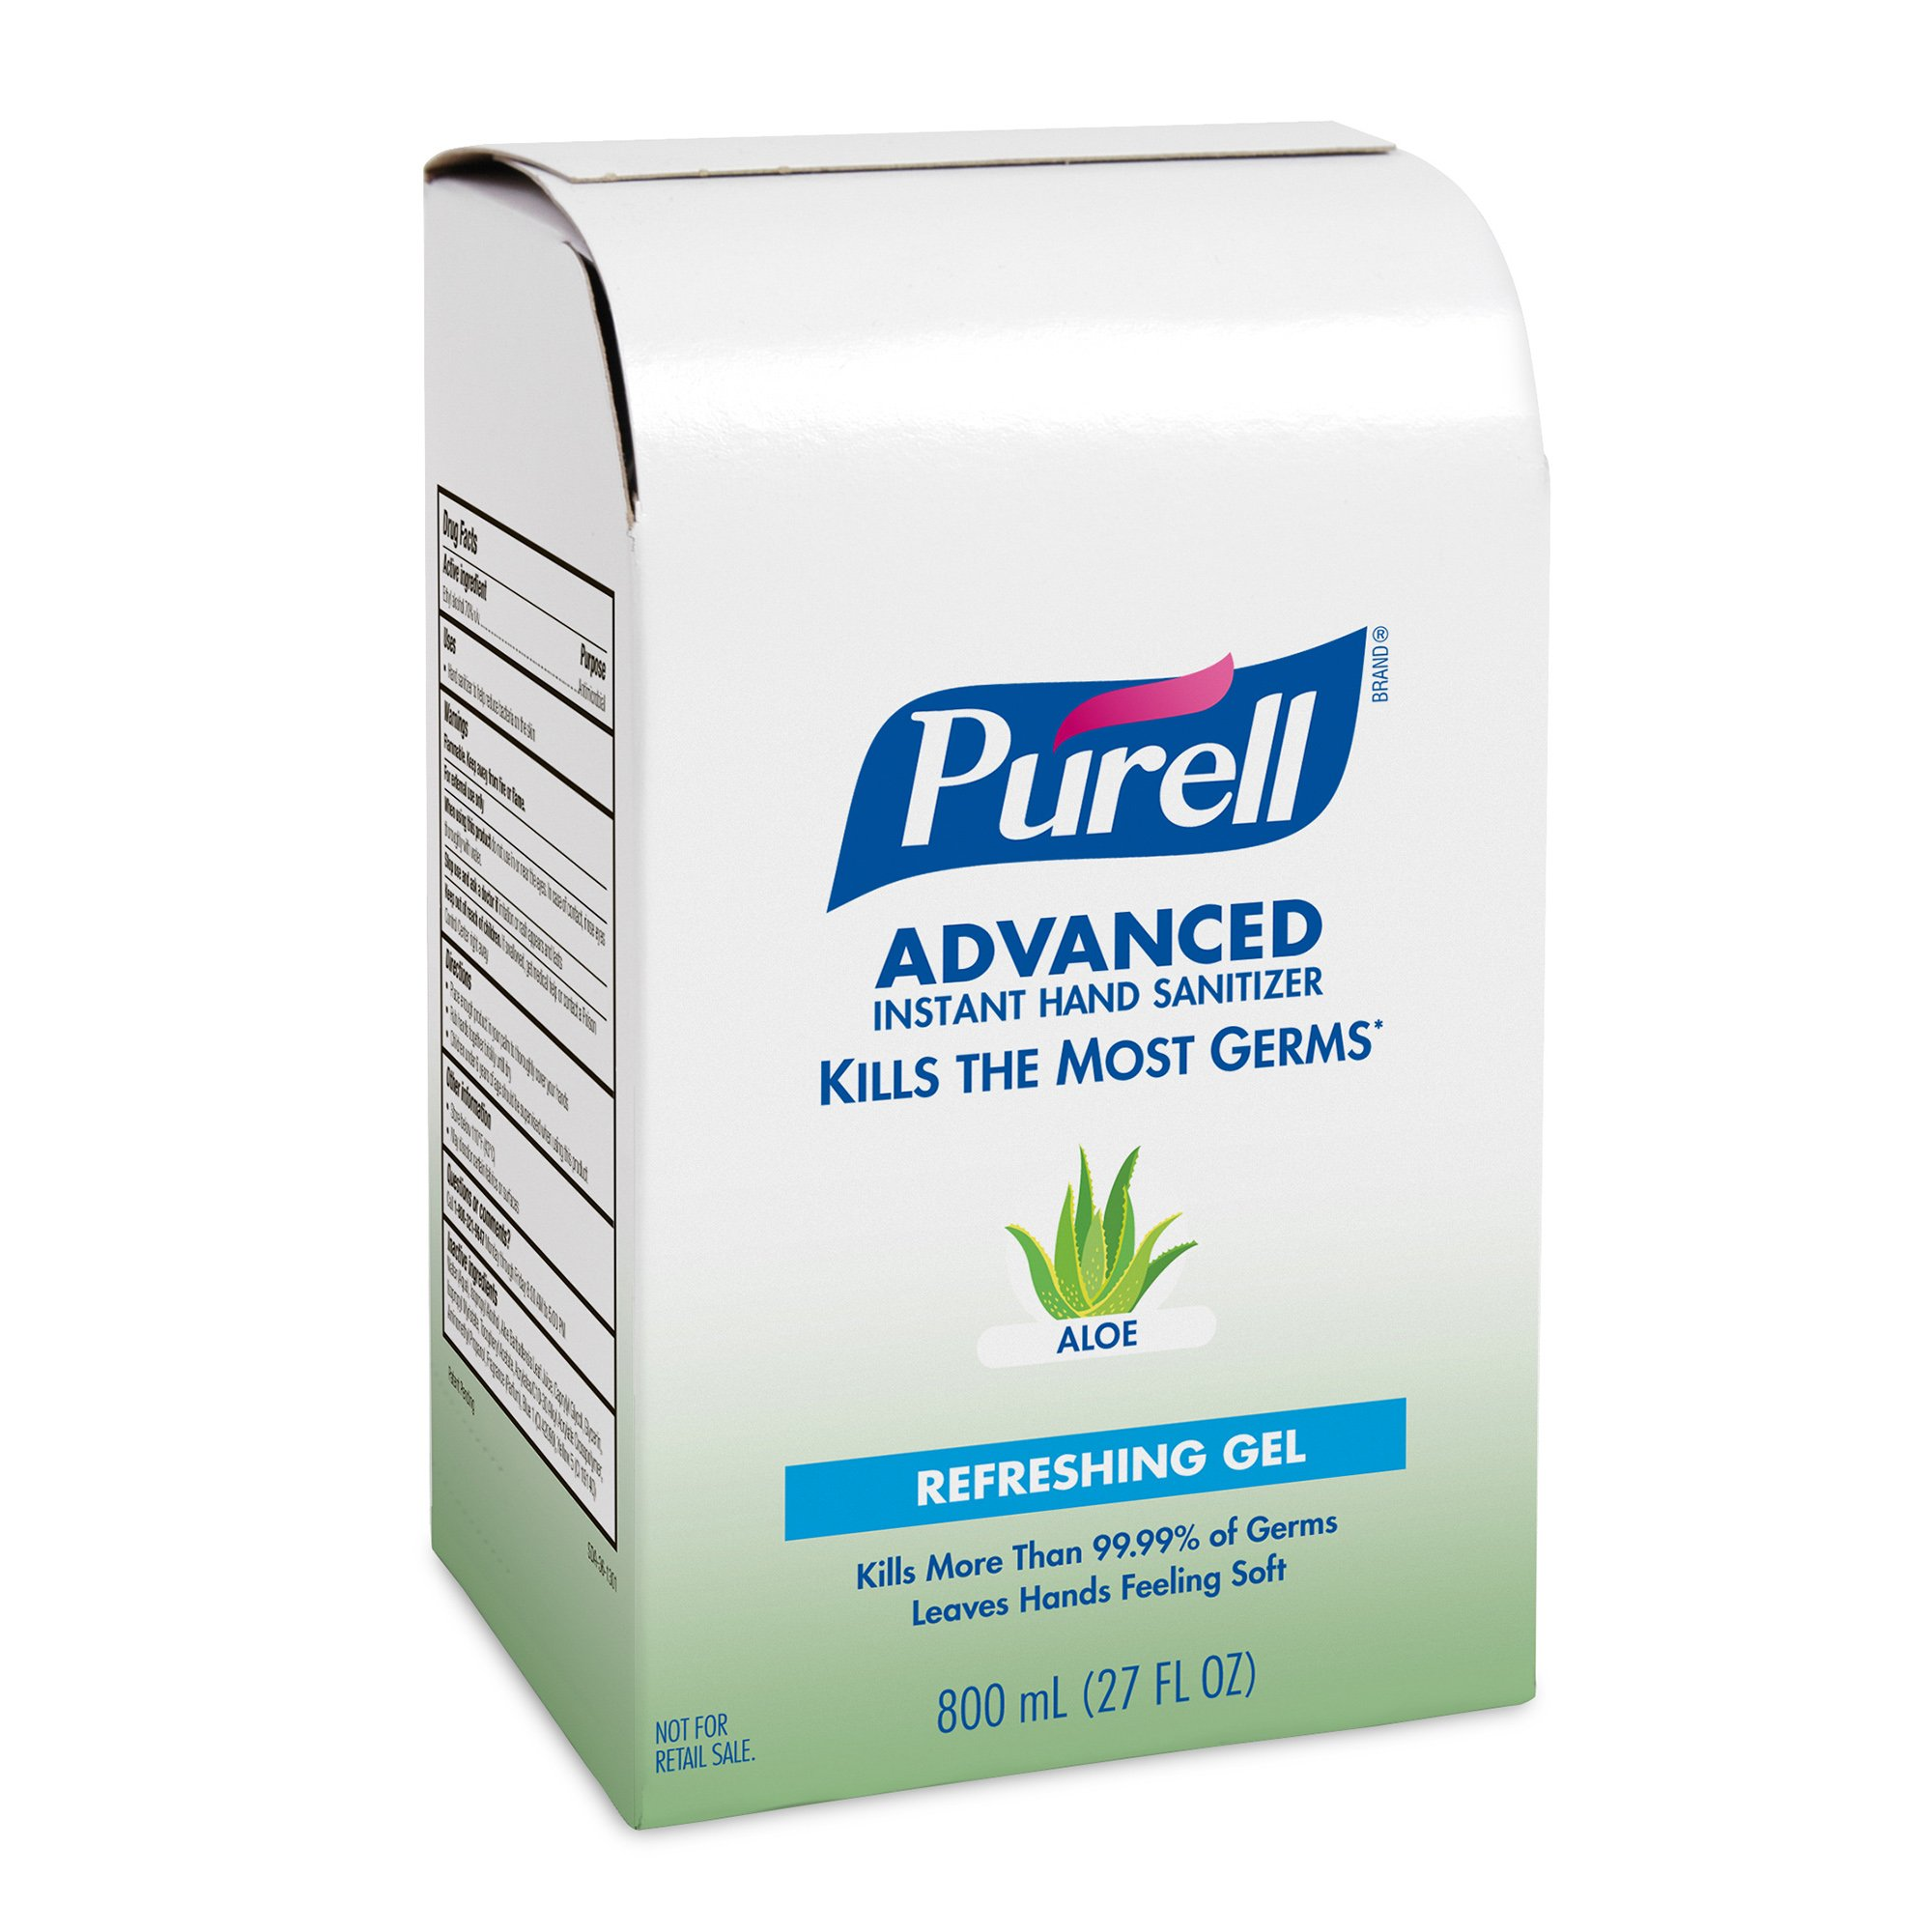 PURELL 9637-12 Advanced Instant Hand Sanitizer with Aloe, 800 mL Refill (Pack of 12)